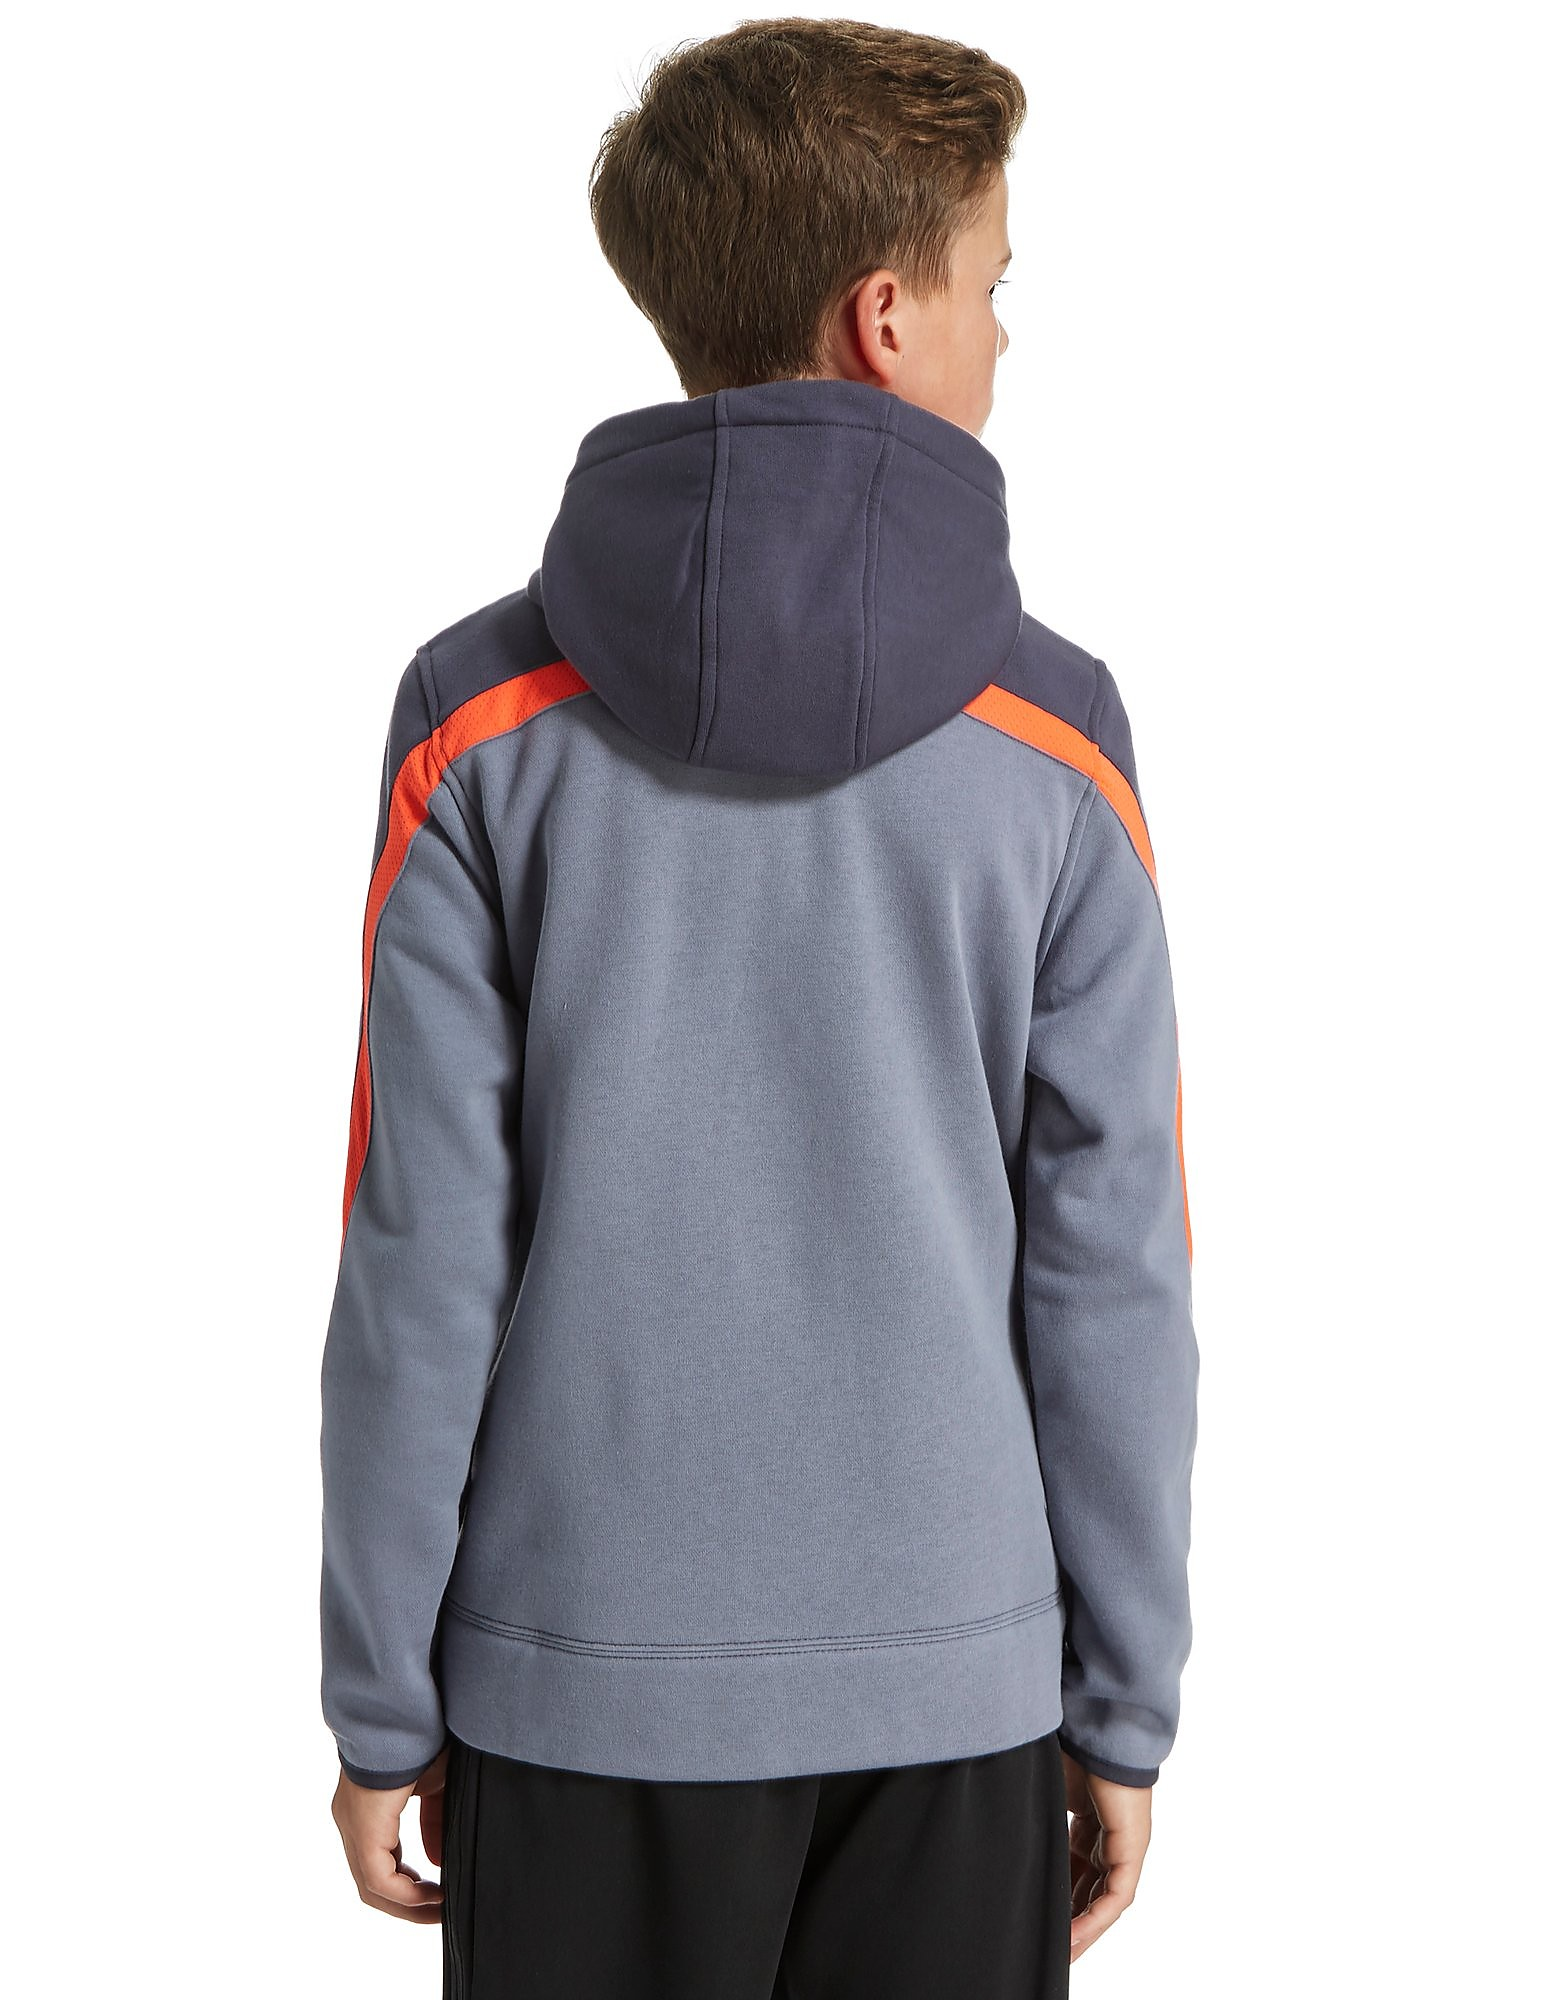 Canterbury England RFU Full Zip Hoody Junior